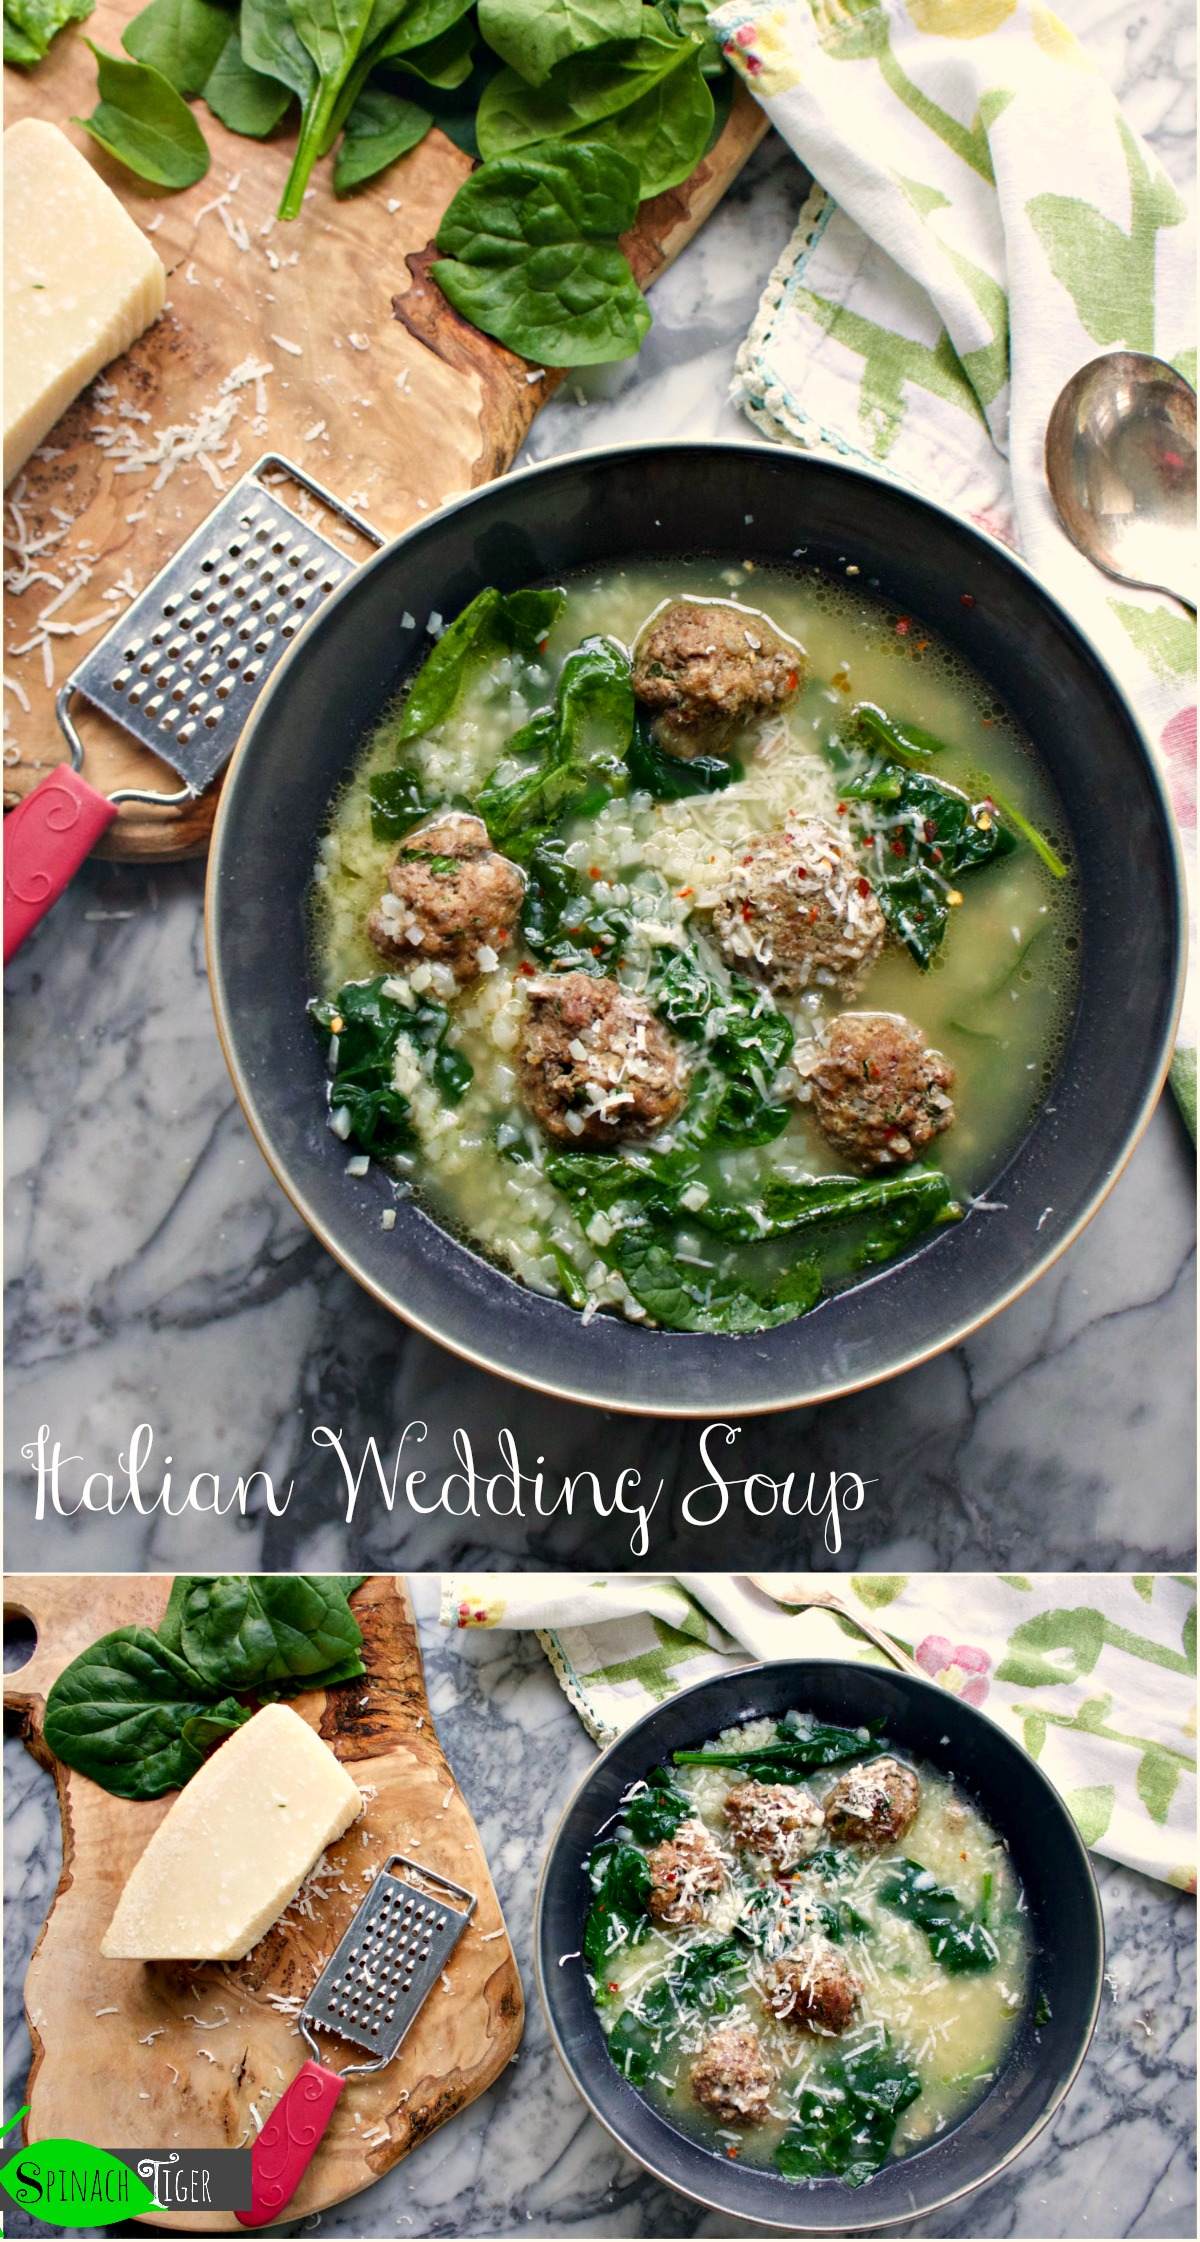 Make Keto Italian Wedding Soup Recipe with Low Carb option from Spinach Tiger